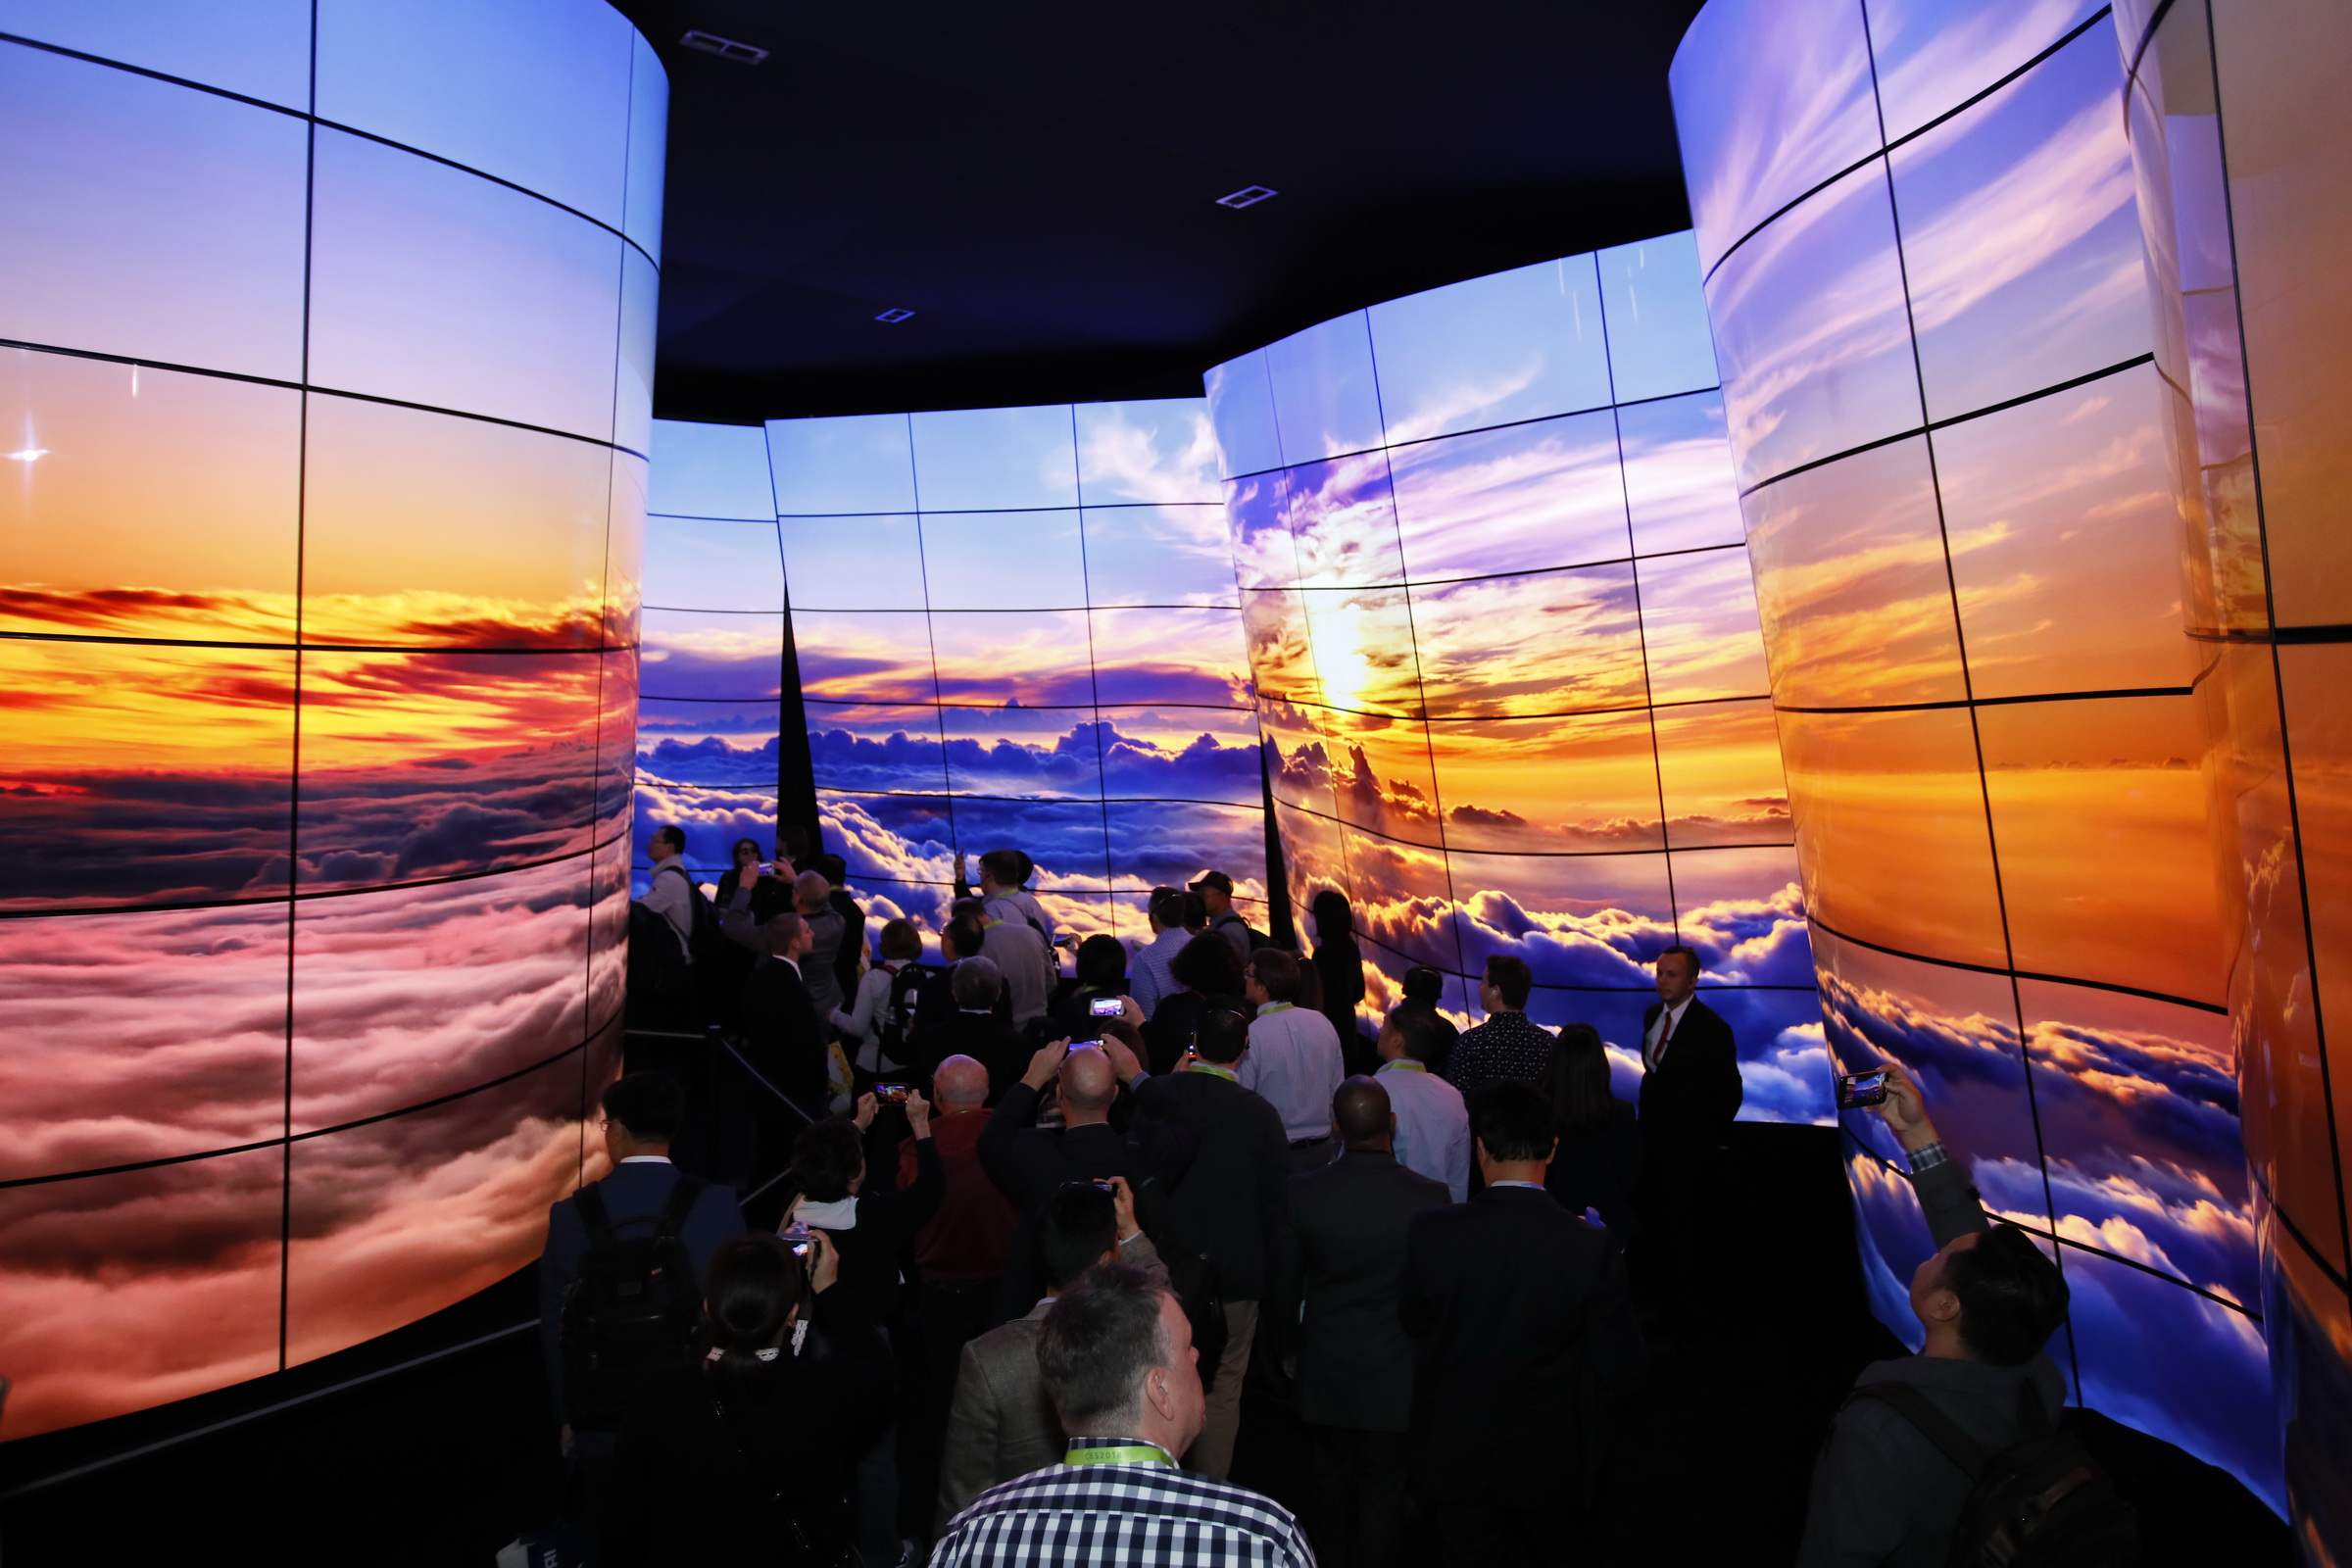 LG OLED Canyon. Image courtesy of CES 2018 Photo Gallery, Copyright Consumer Technology Association.